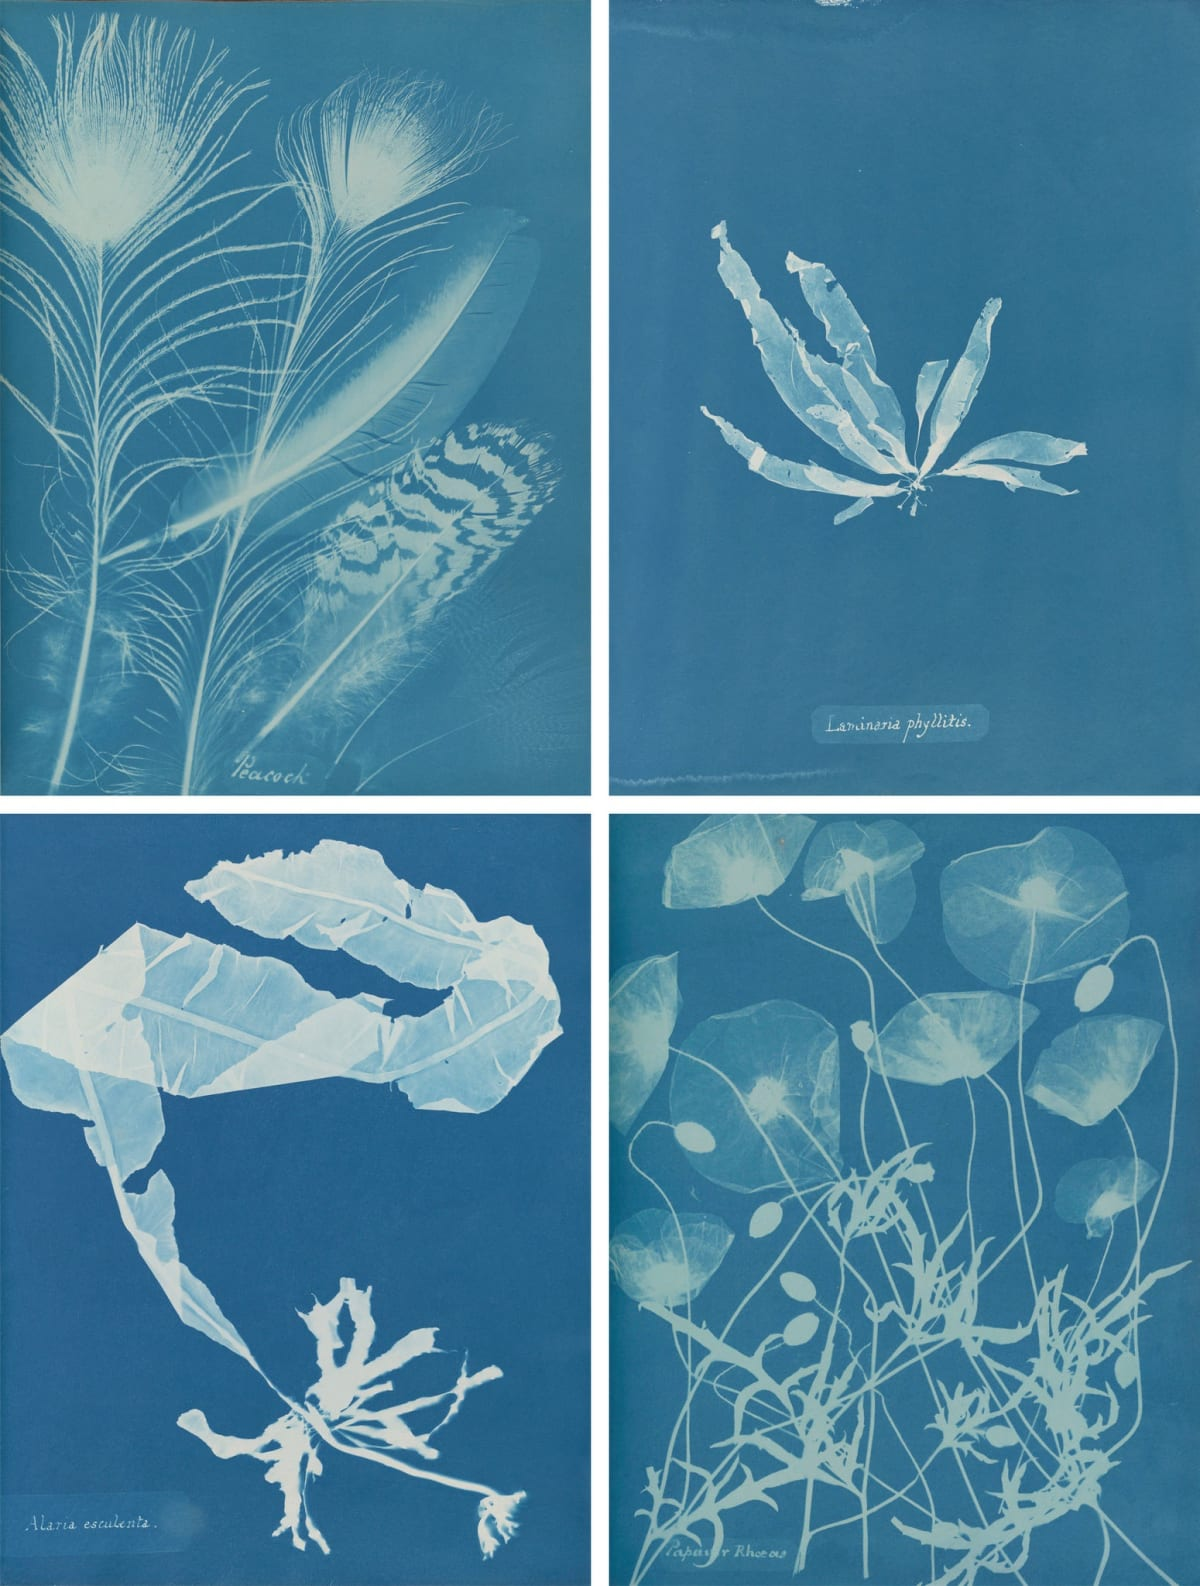 """Anna Atkins's pioneering images, clockwise from top left: """"Peacock"""" (1861), """"Laminaria phyllitis"""" (1844-45), """"Papaver rhoeas"""" (1861), and """"Alaria esculenta"""" (1849-50).via Hans P. Kraus Jr., New York (top left and bottom right); The New York Public Library, Astor, Lenox and Tilden Foundations"""